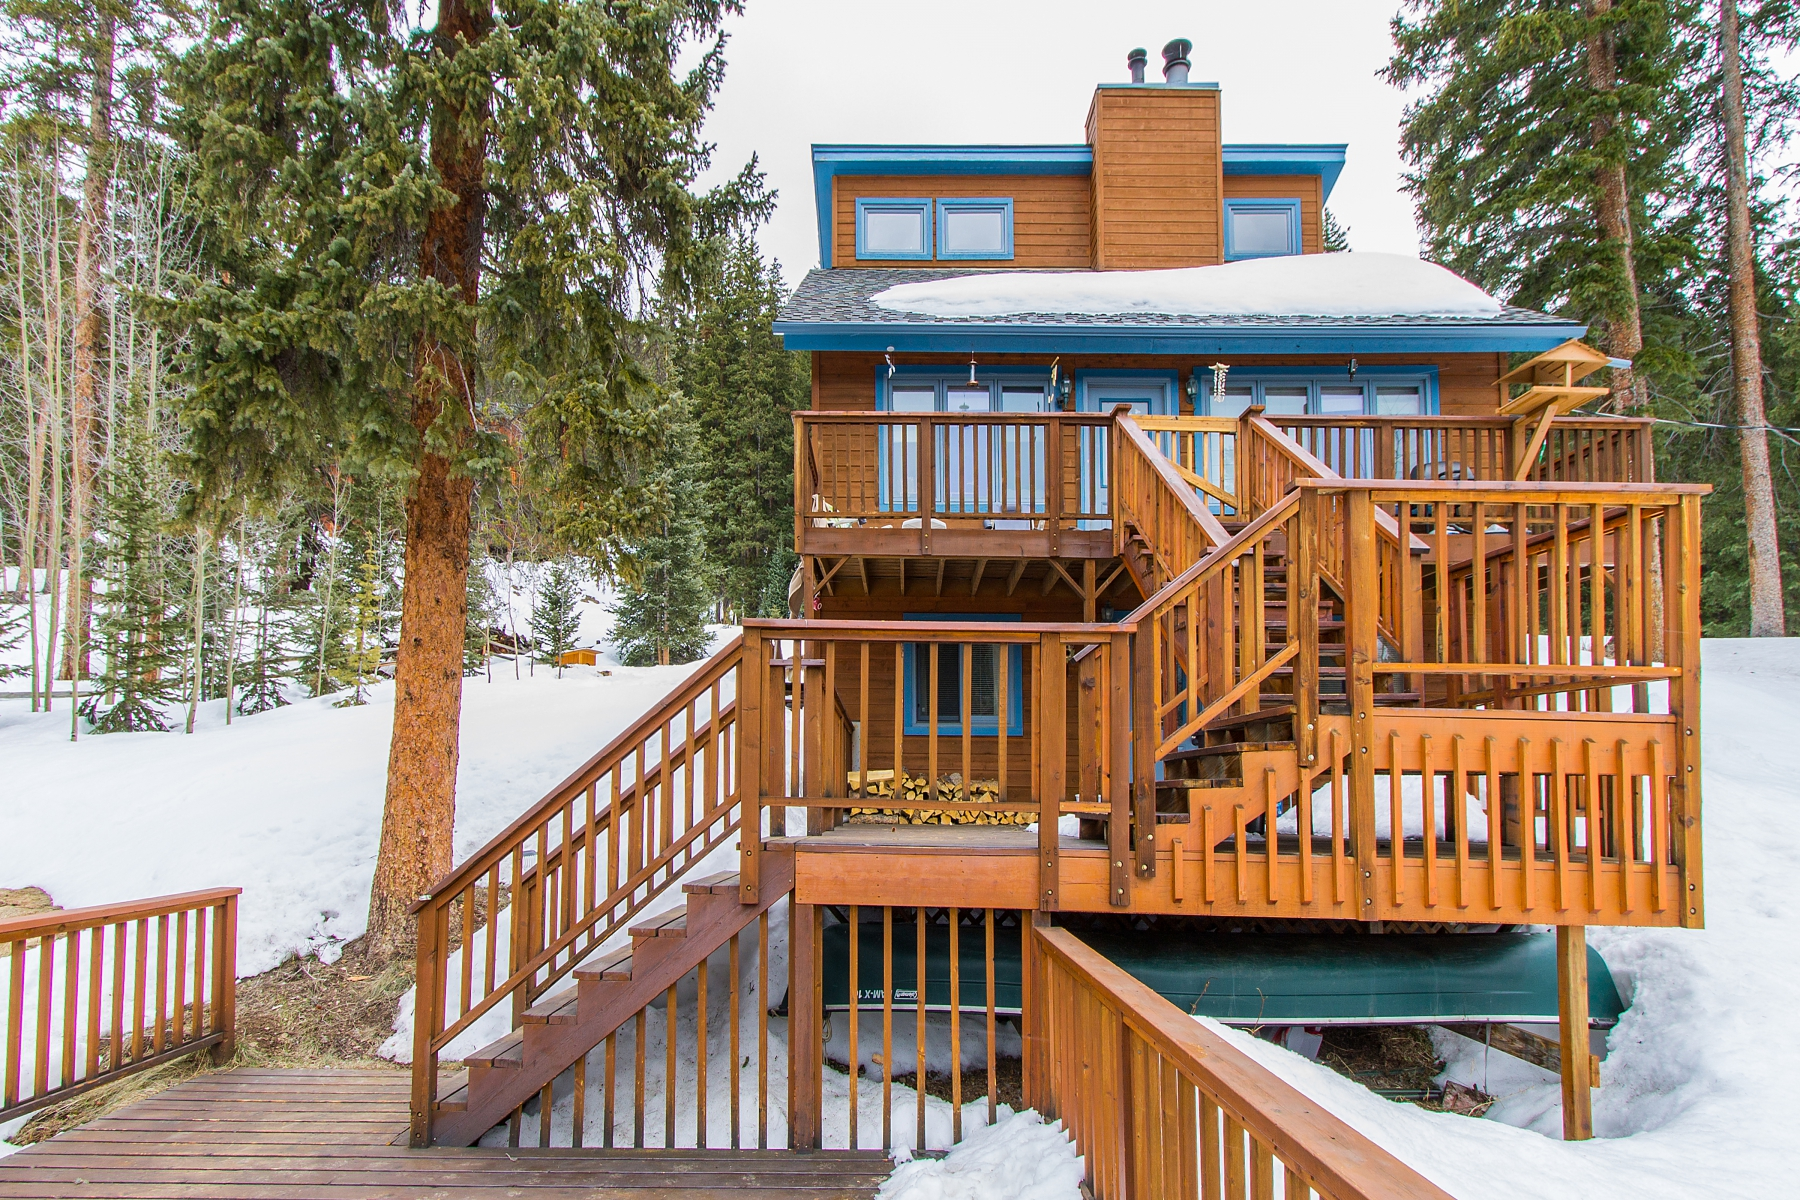 Single Family Home for Sale at Great Home In Blue River With Amazing Views 584 Range Road Breckenridge, Colorado 80424 United States